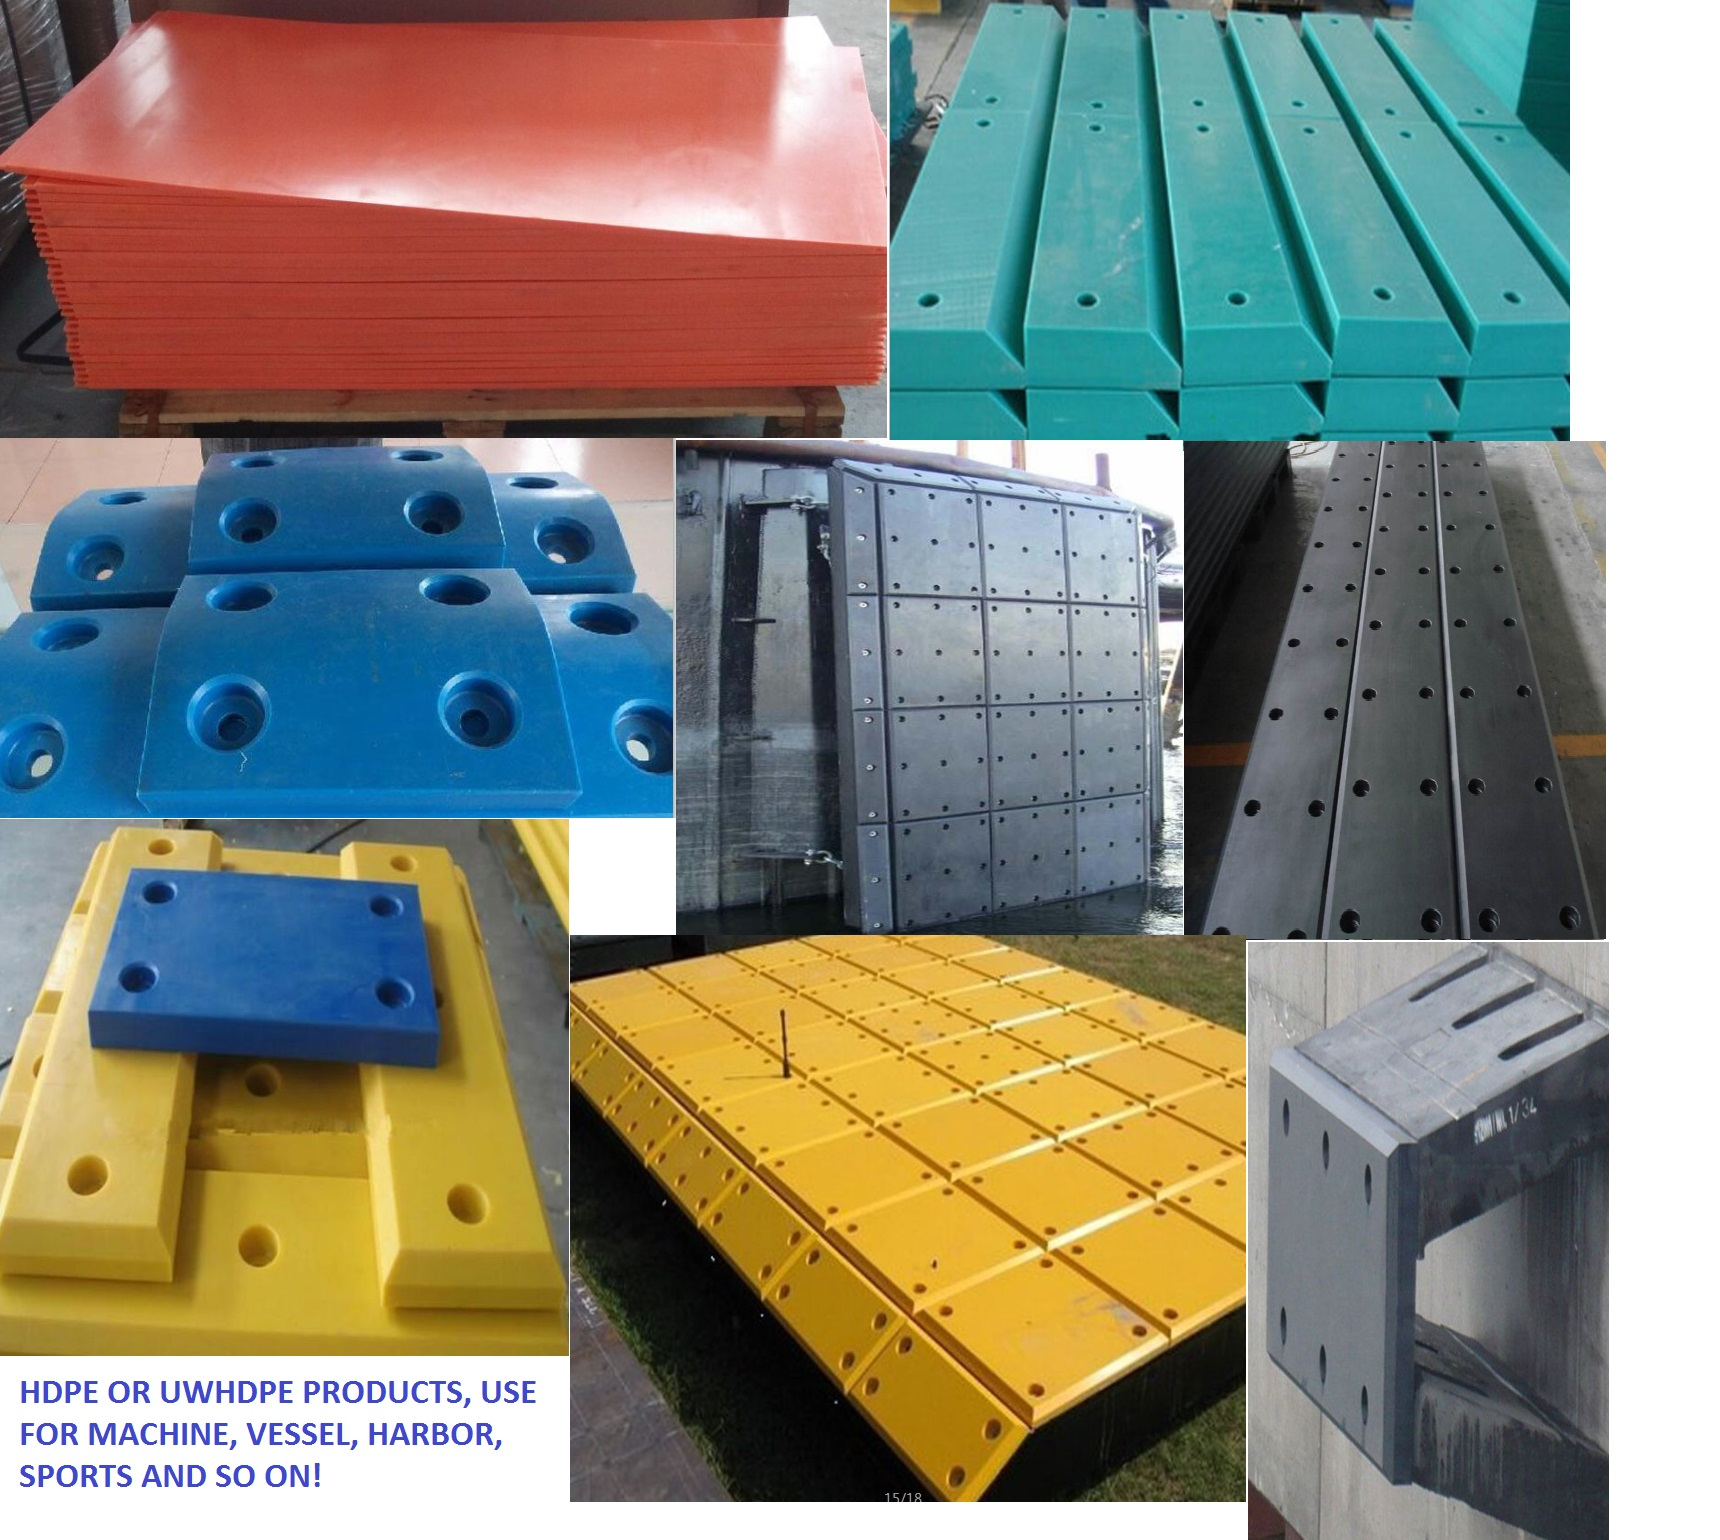 Other Hdpe Products